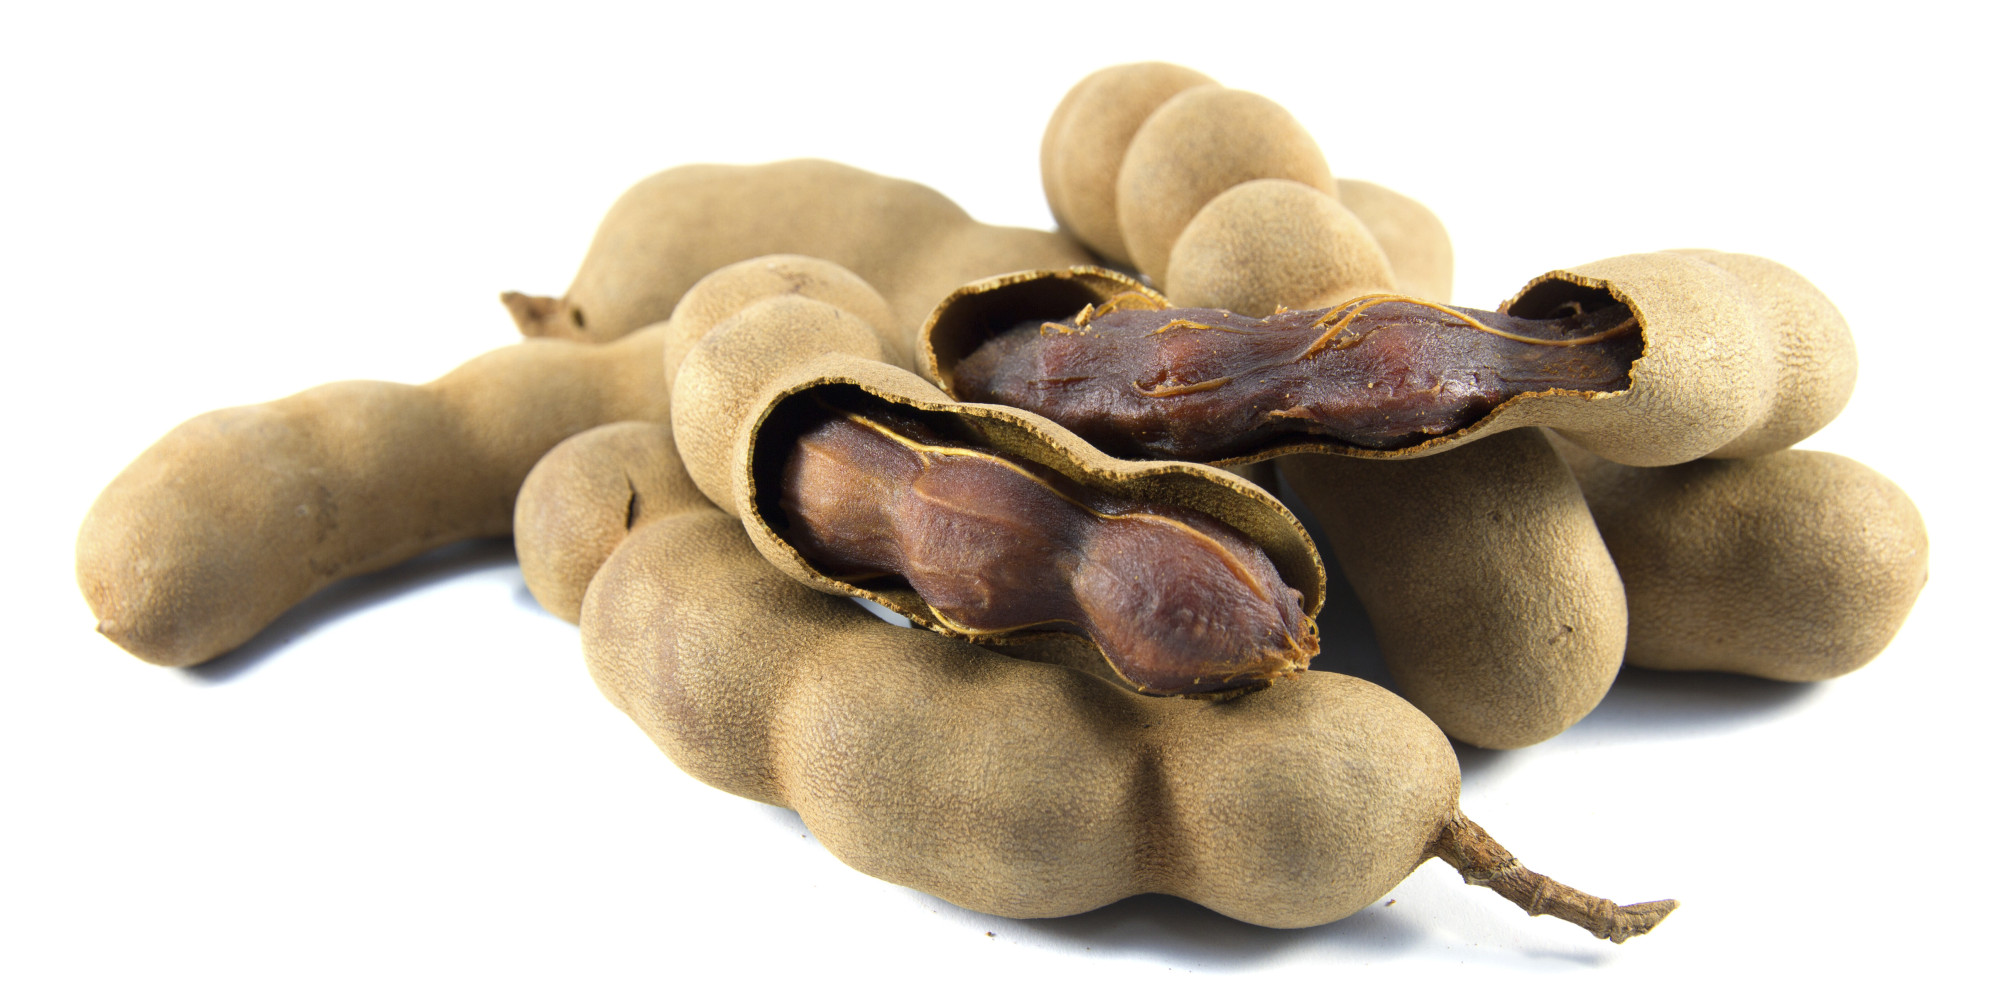 Tamarind fruits photo